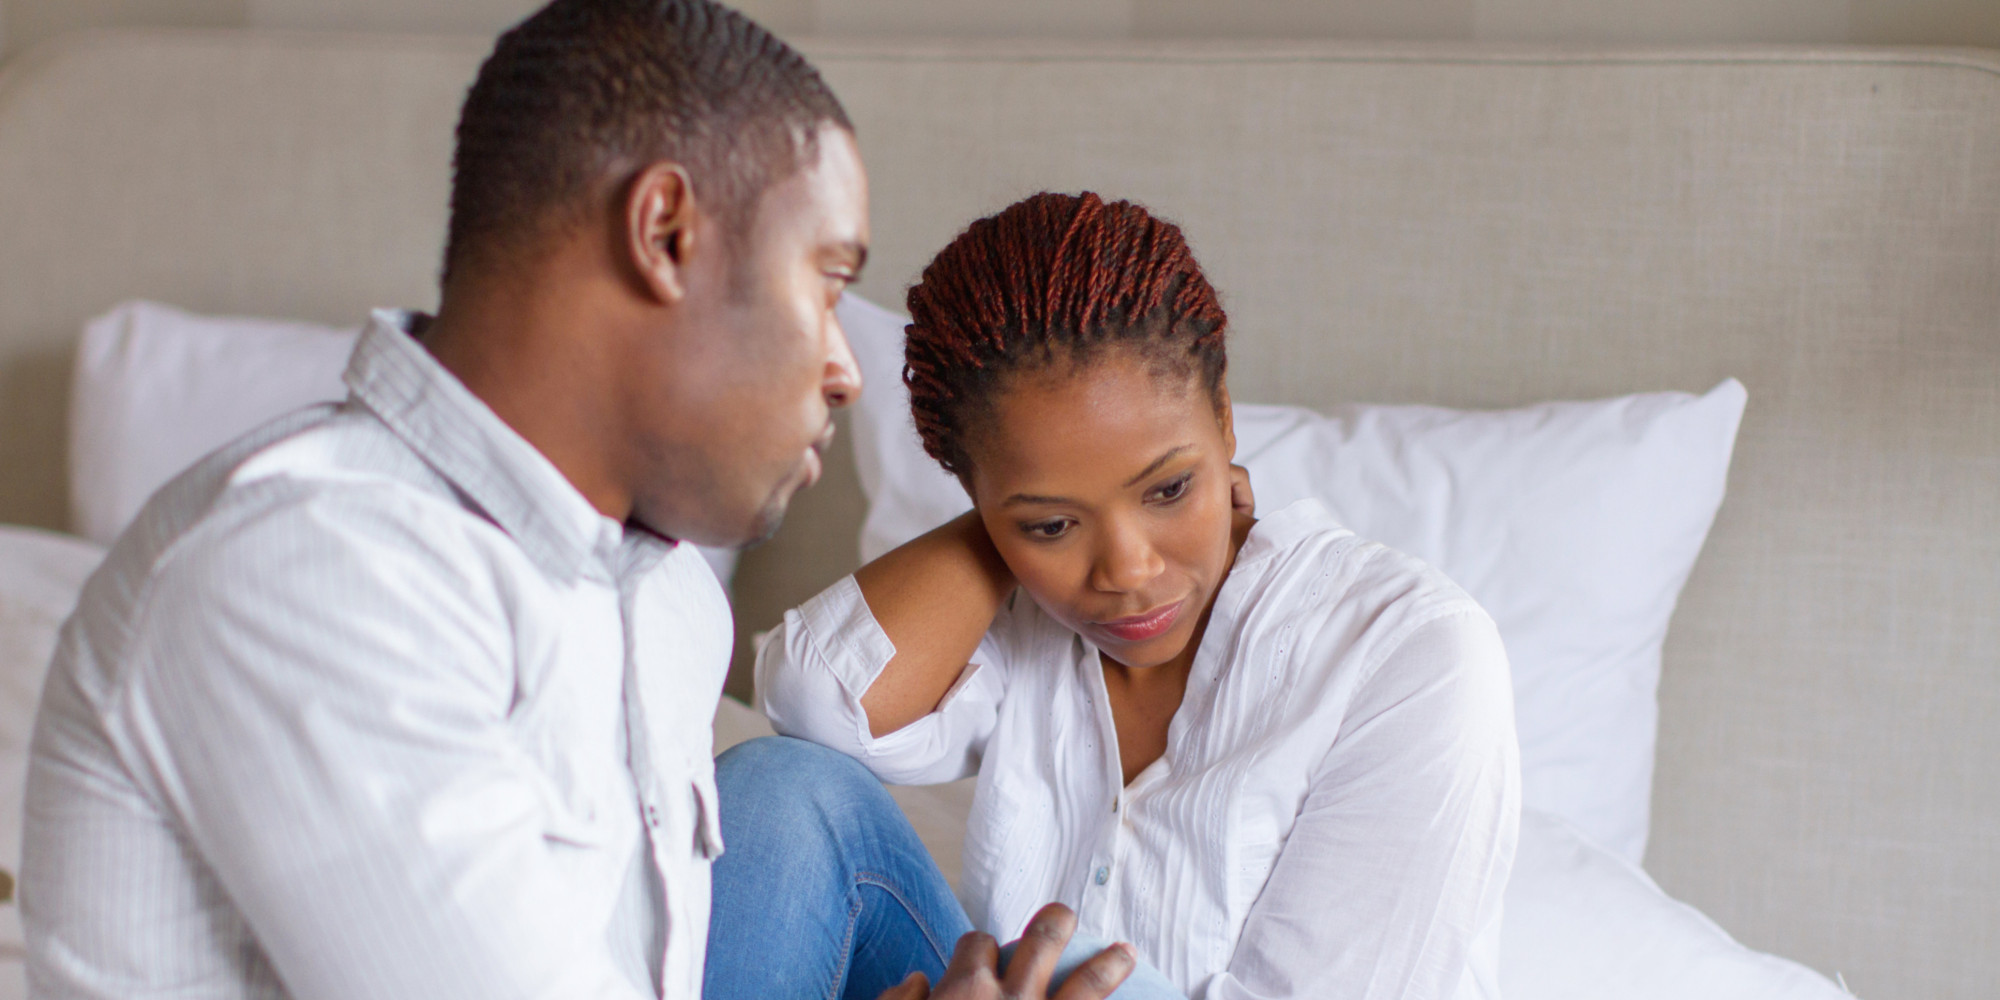 women reveal moment they knew should divorced